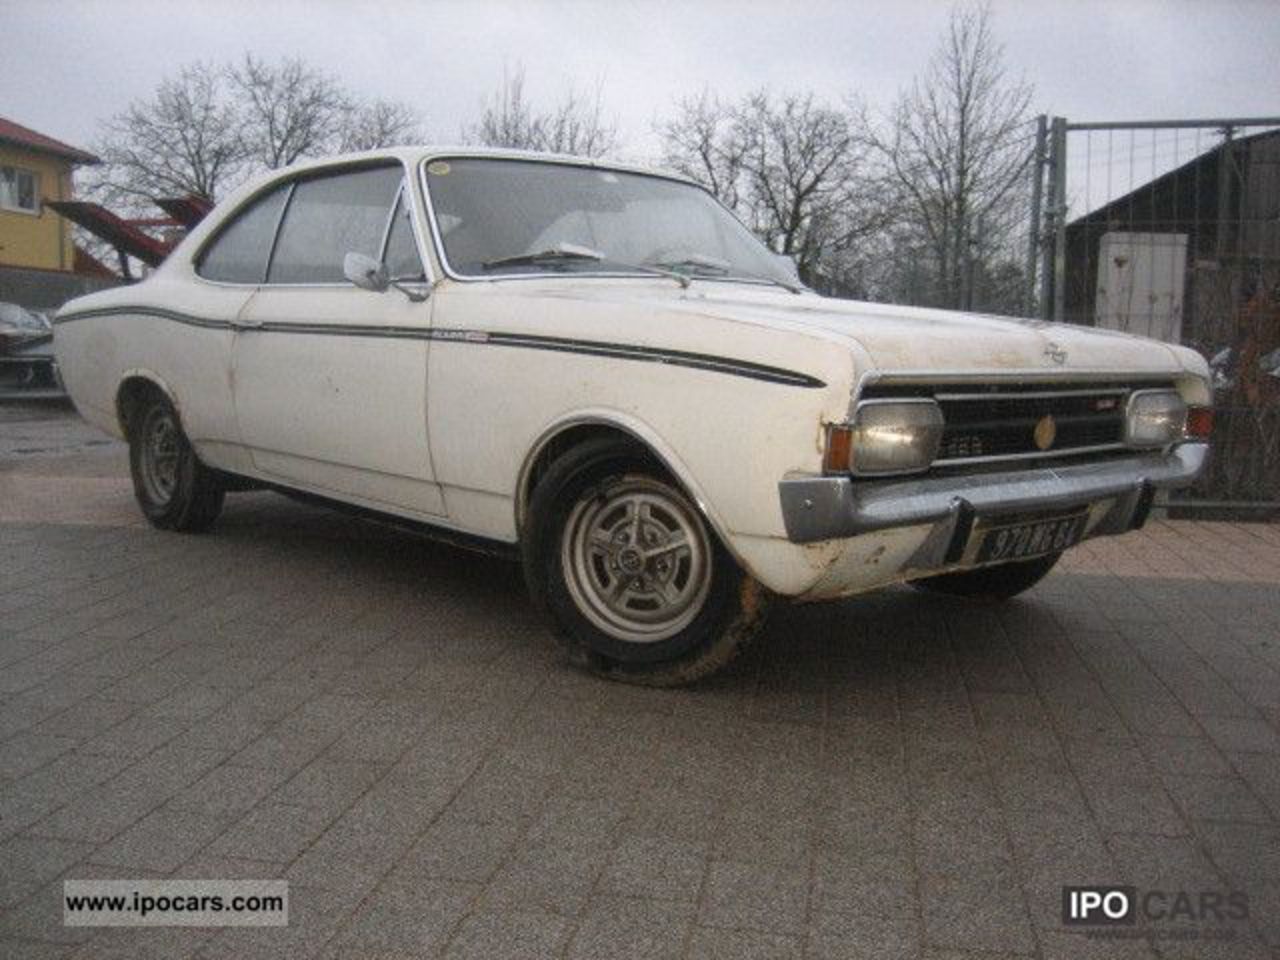 1968 Opel Rekord C Sprint Coupe Sports car/Coupe